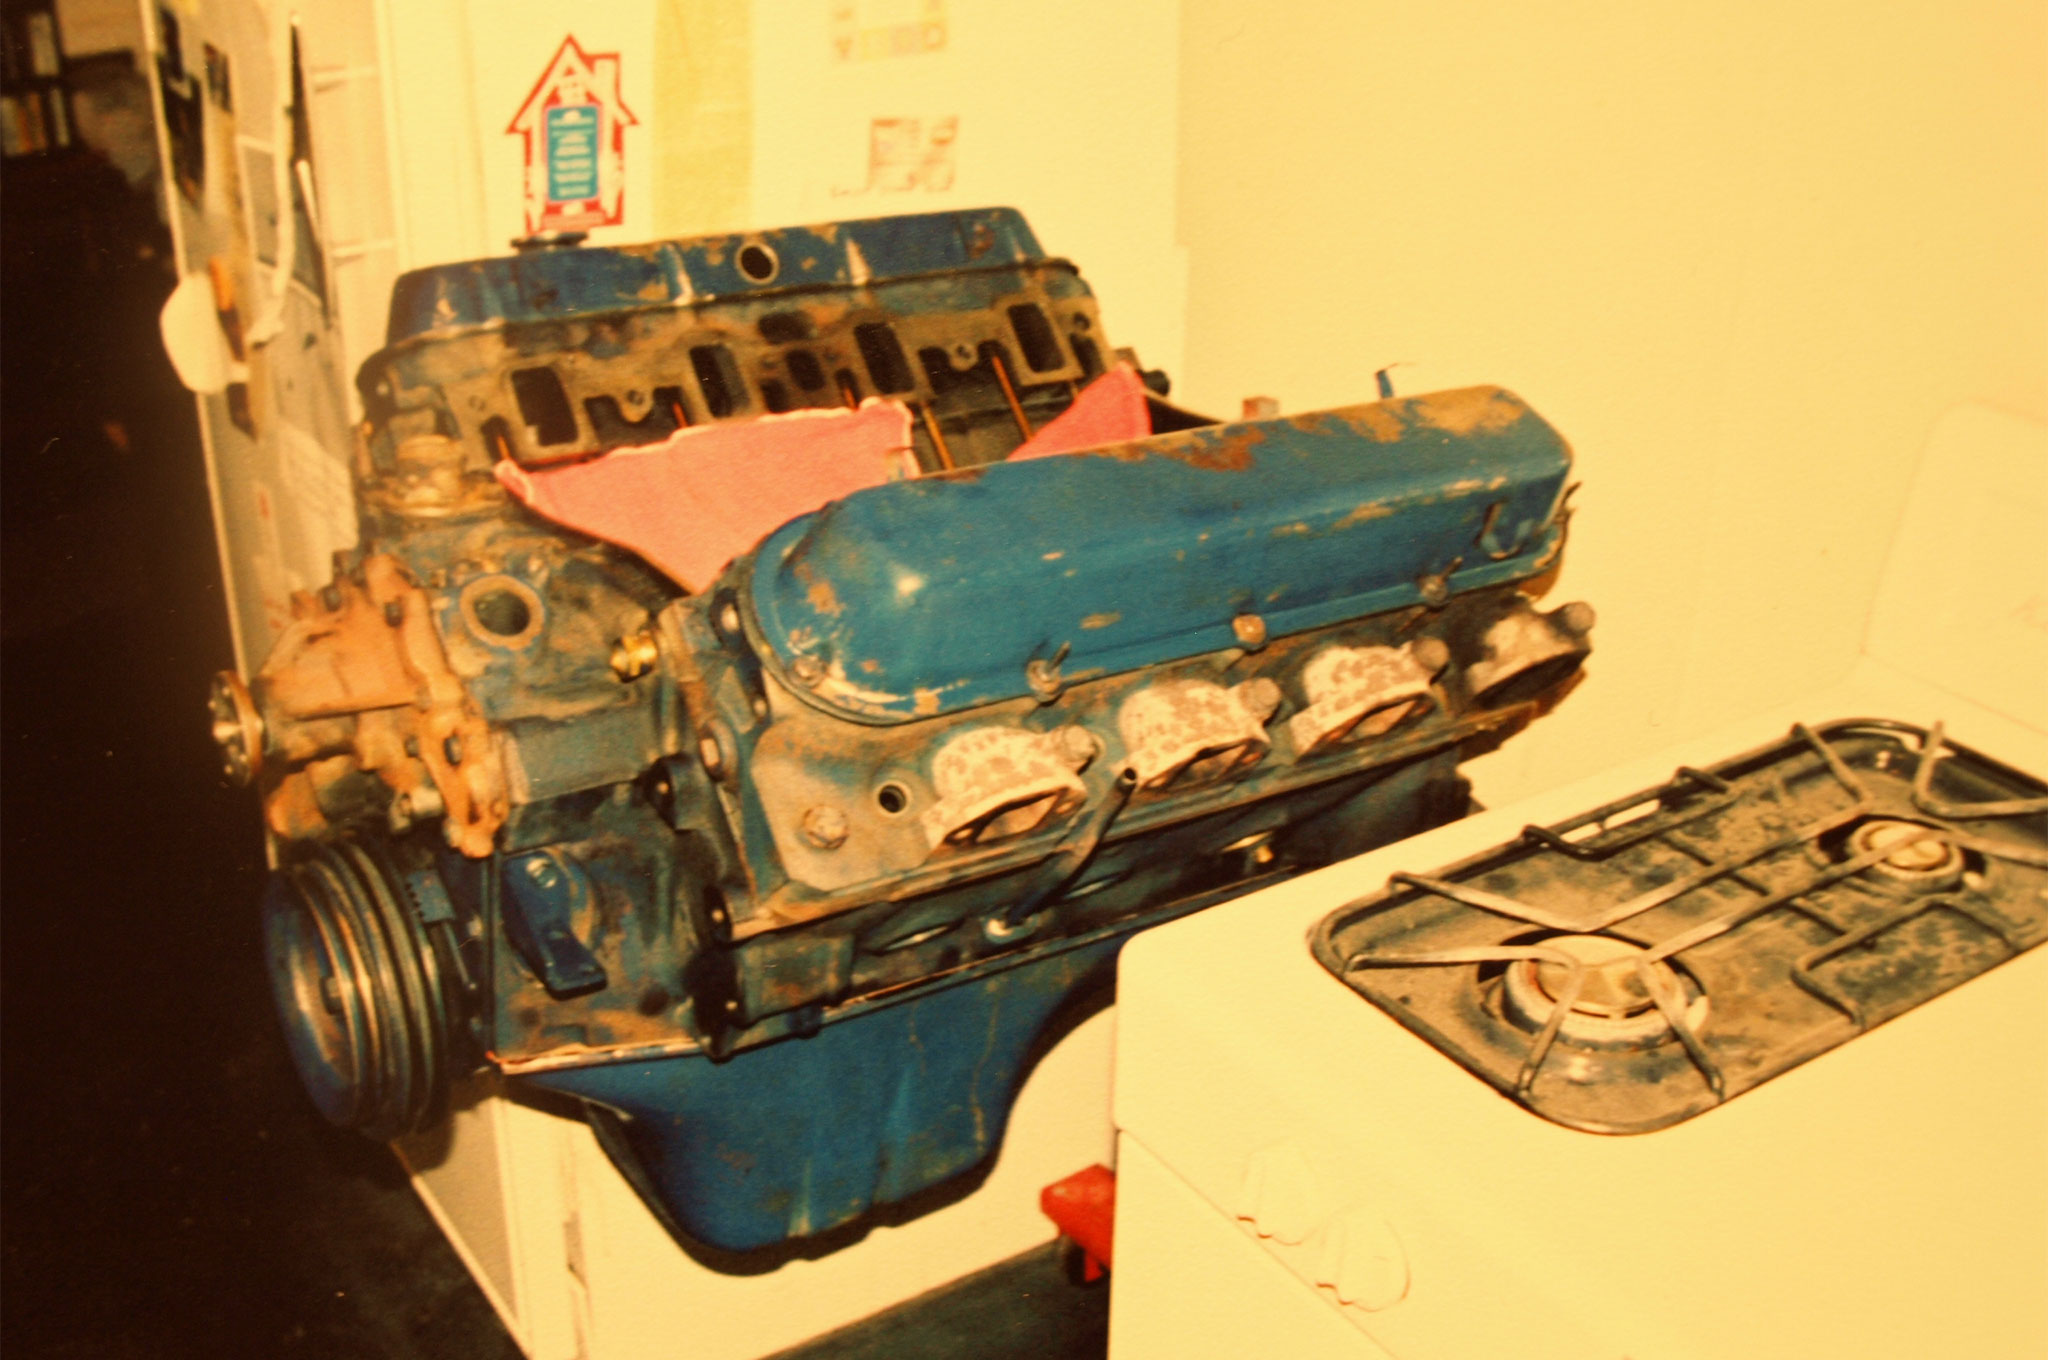 I've always had a fascination with Cadillac 500-inch V8s. I saw them all over the place during my weekly junkyard tours and wrote several HRM articles touting the virtues of cheap torque. I pulled this one from a 1970 Eldorado and stuffed it into a 1981 Chevy Chevette for the April 2000 issue. While the Bad Seed Chevette was being prepared for the V8 infusion, the big 8.2 stayed safe in the kitchen.